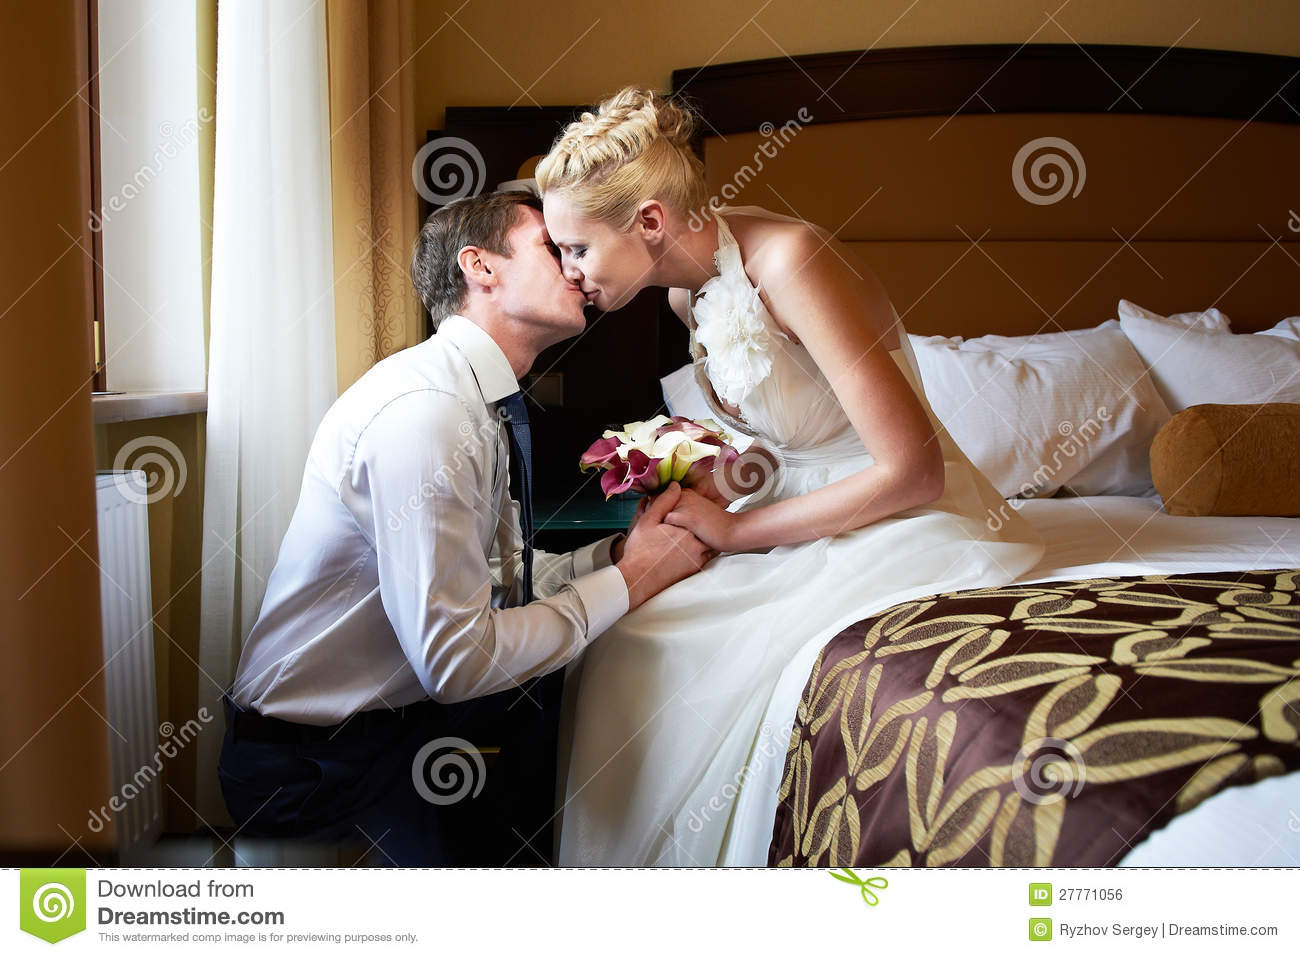 Romantic Kiss Bride And Groom In Bedroom Stock Photo - Image of ...